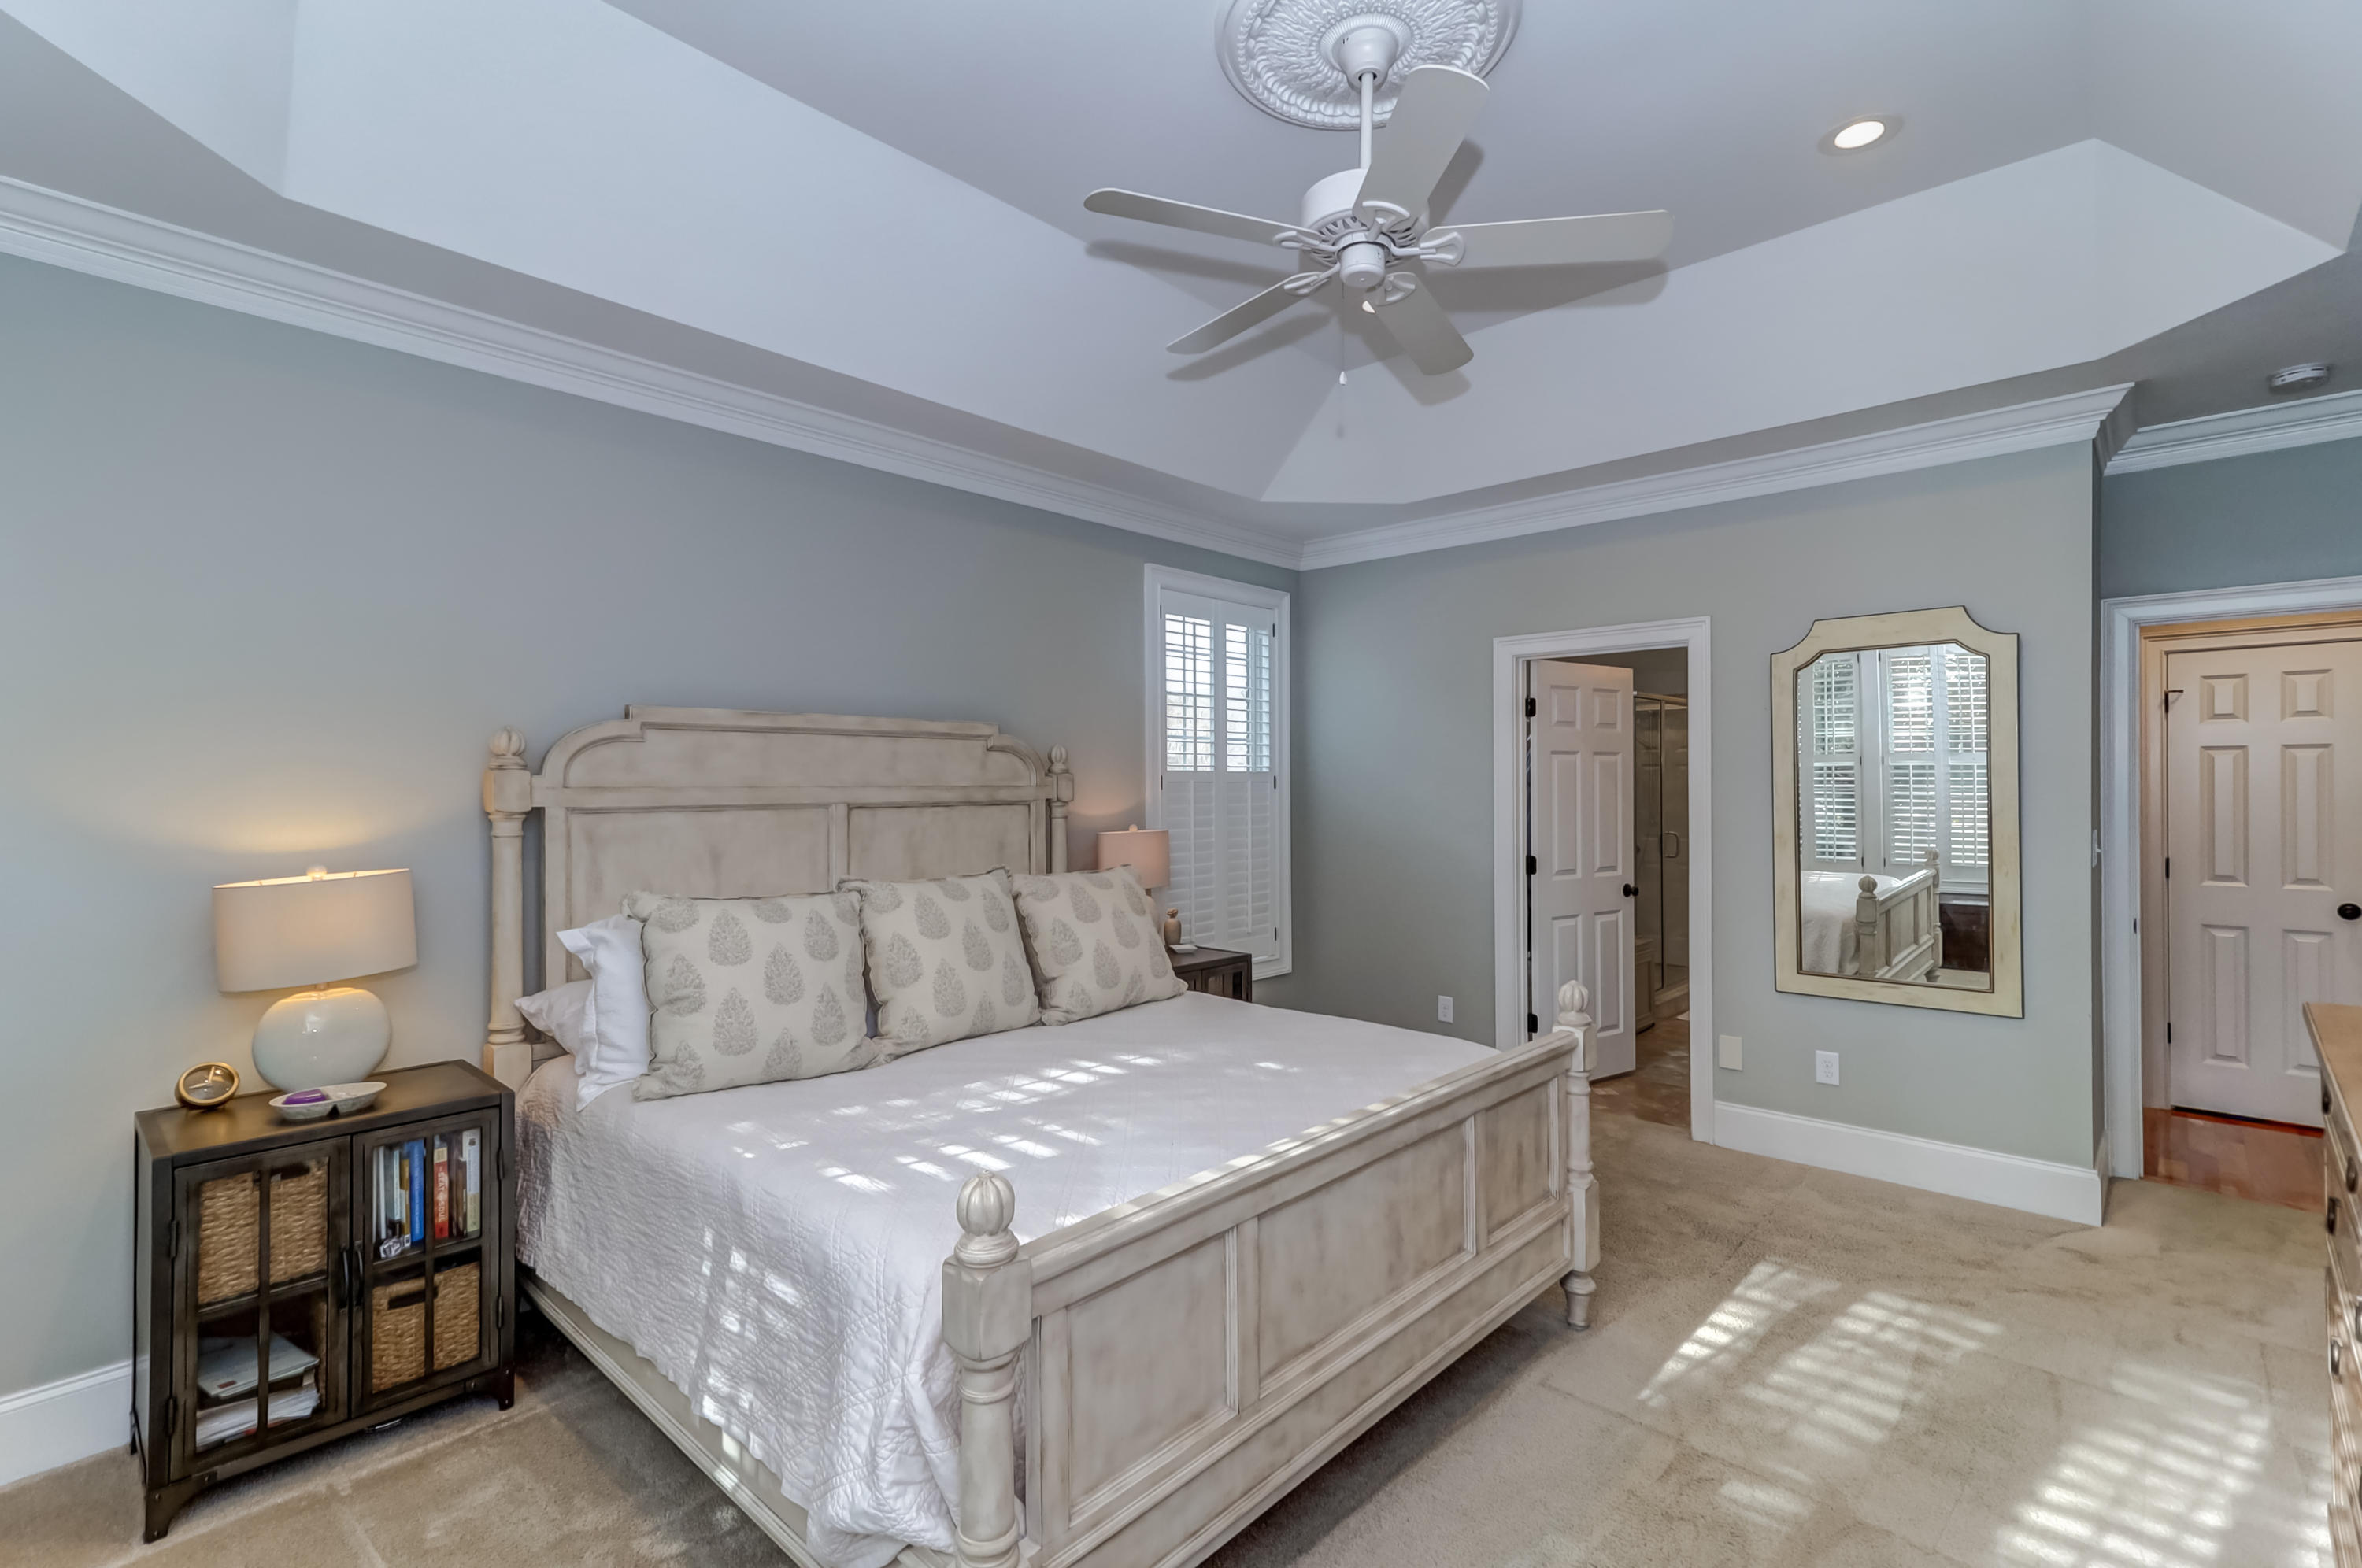 Woodward Pointe Homes For Sale - 657 White Chapel, Charleston, SC - 14